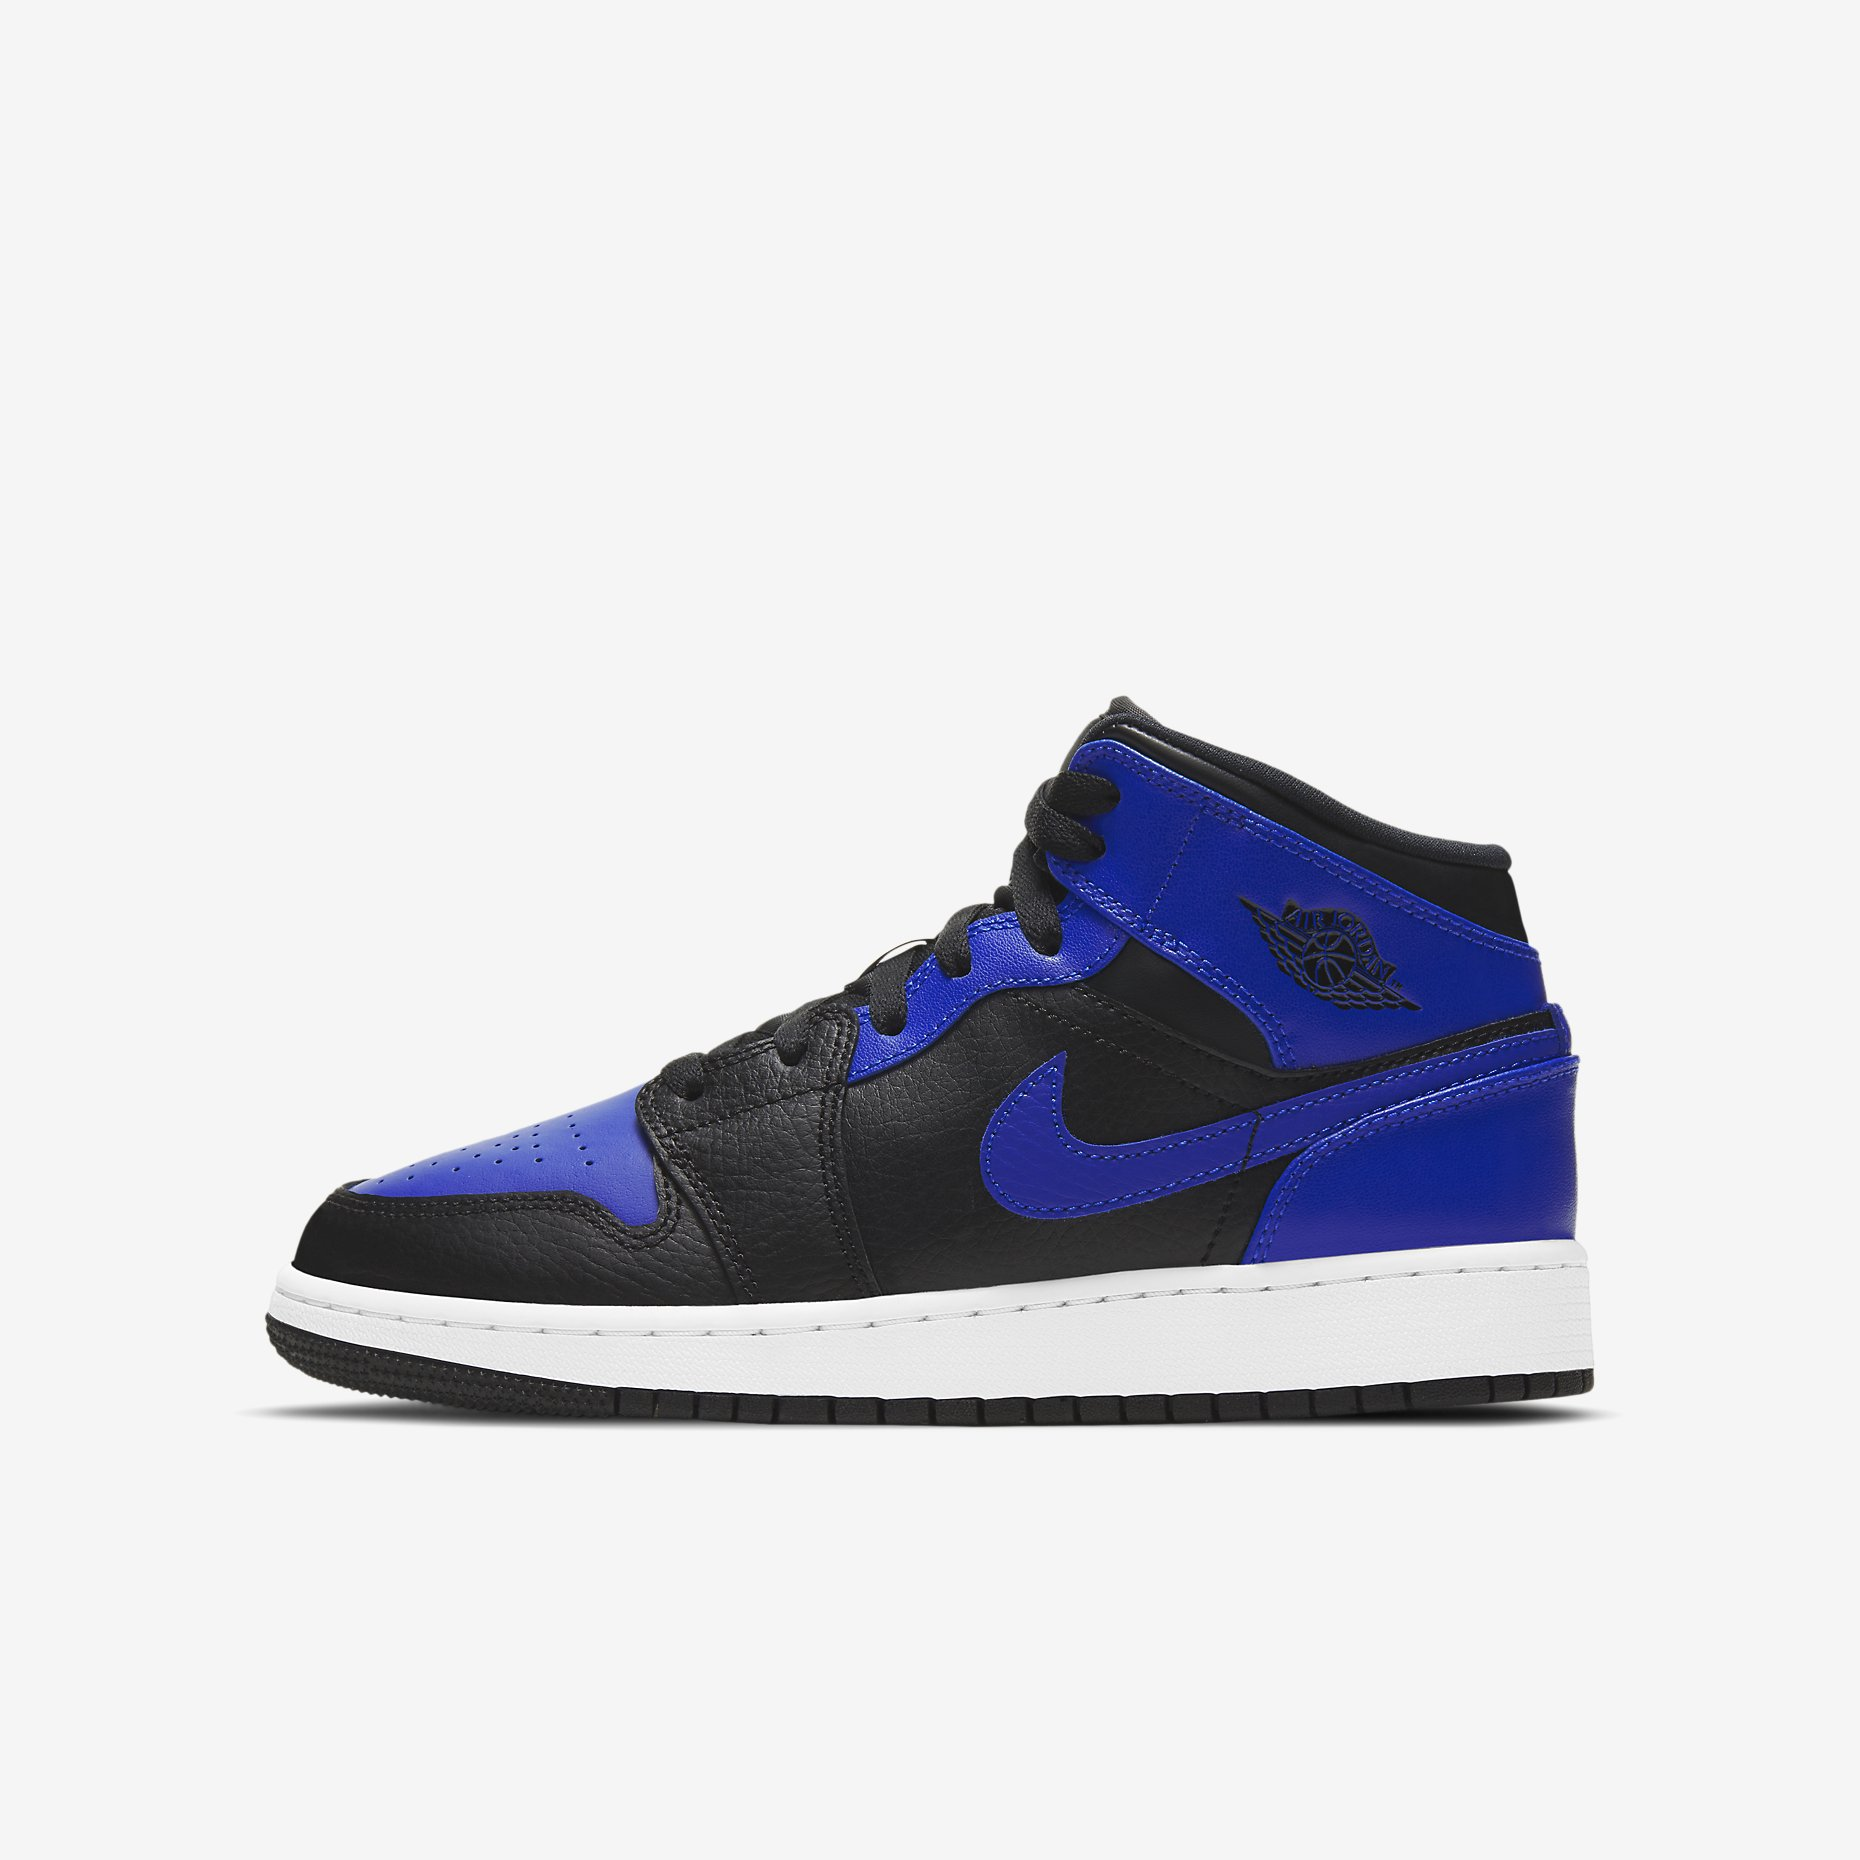 Air Jordan 1 Mid GS 'Black/Hyper Royal'}